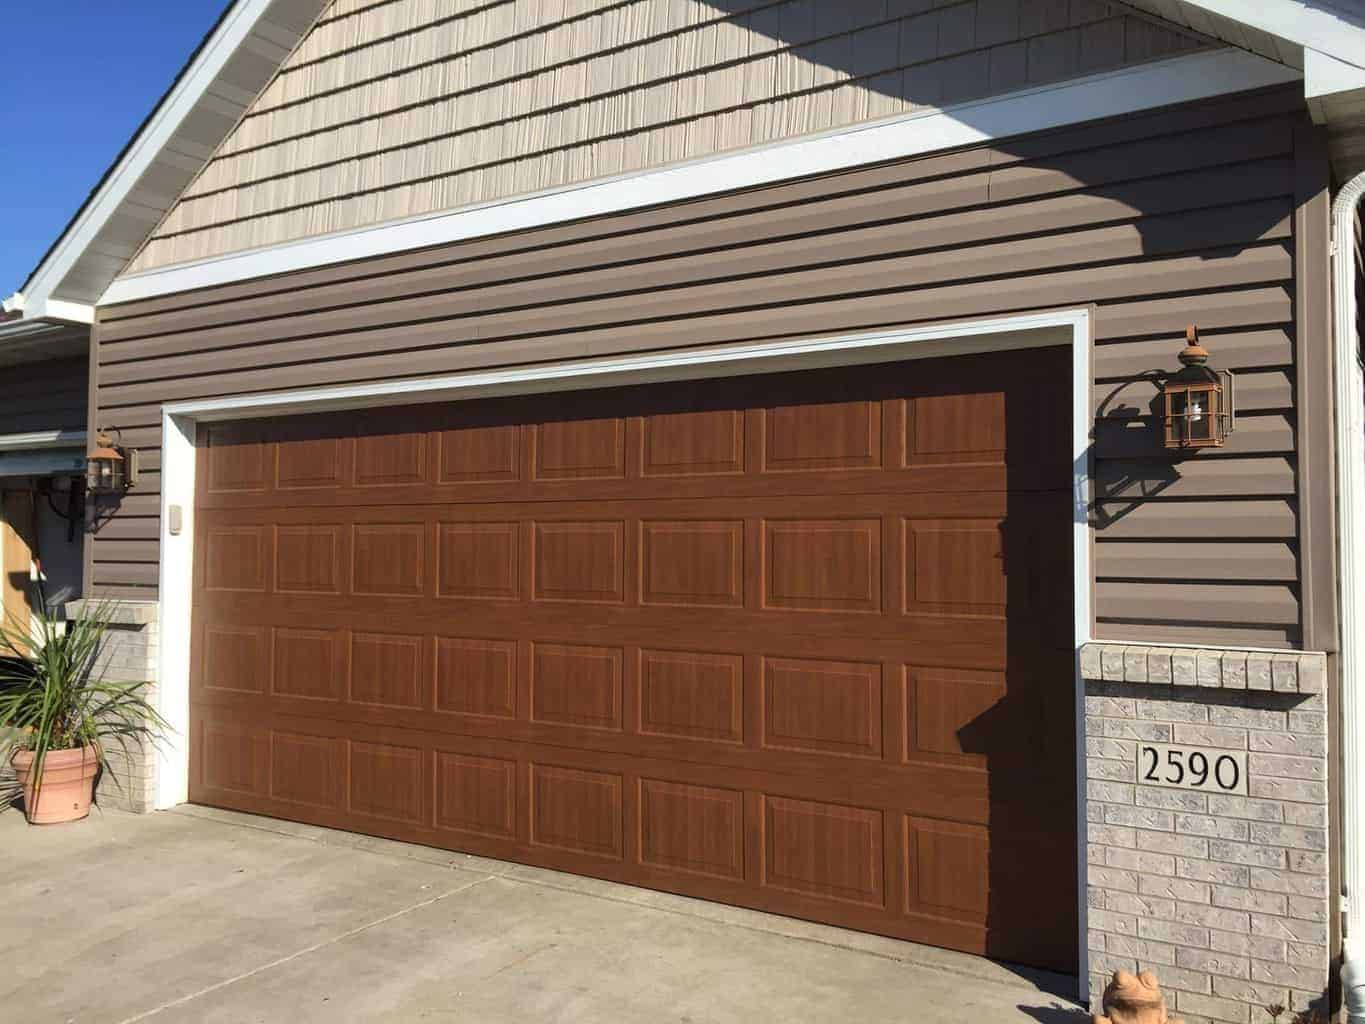 Delicieux Thermacore 194 Series Steel Garage Door   Hastings, MN Install